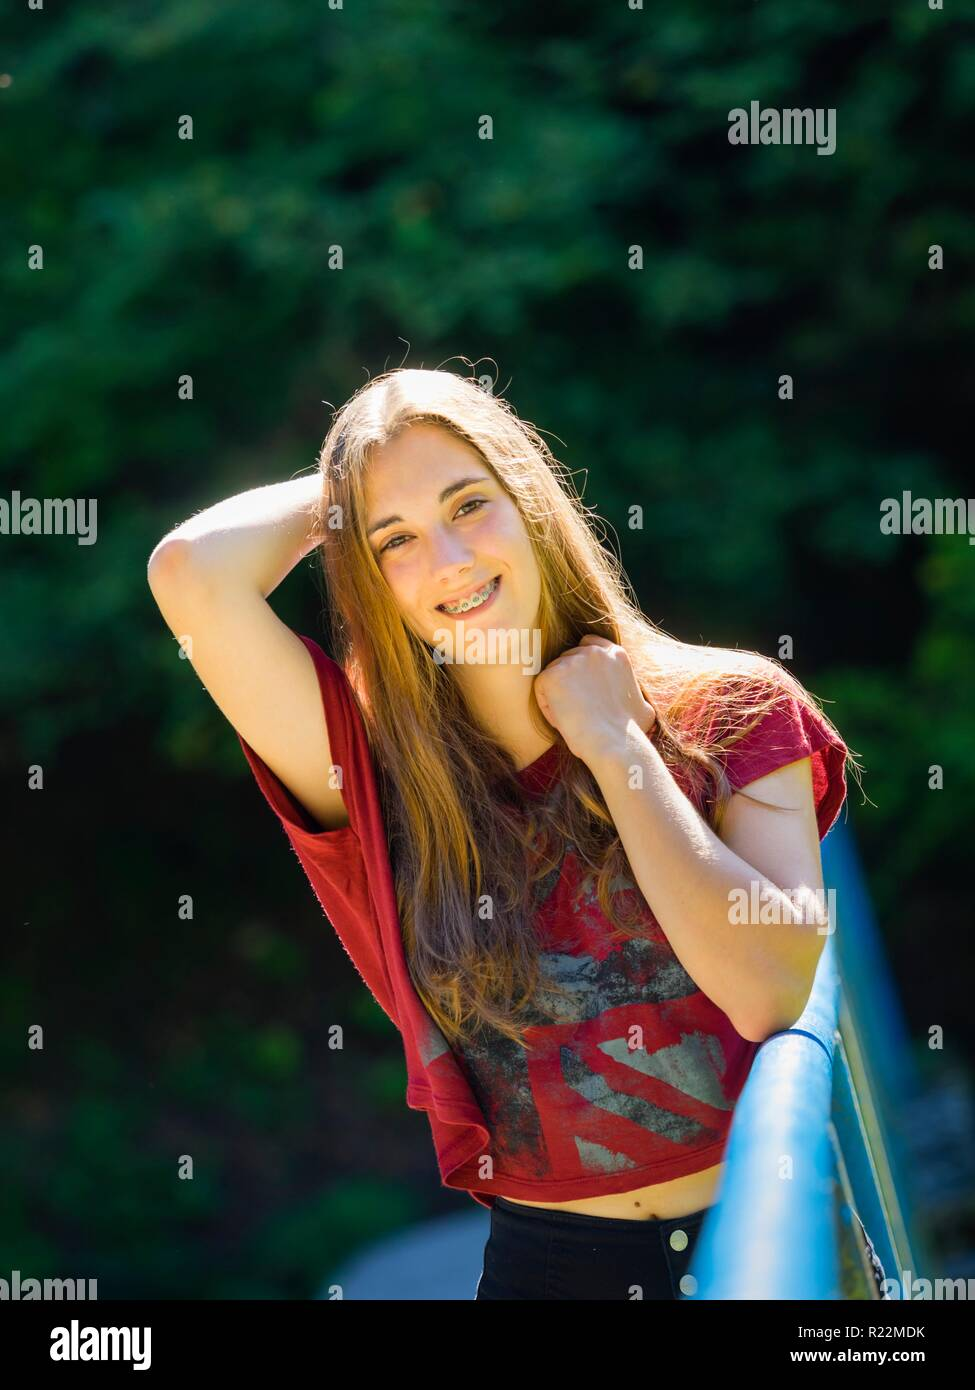 Teeth braces young teen woman eyes-contact looking at camera smiling Stock Photo